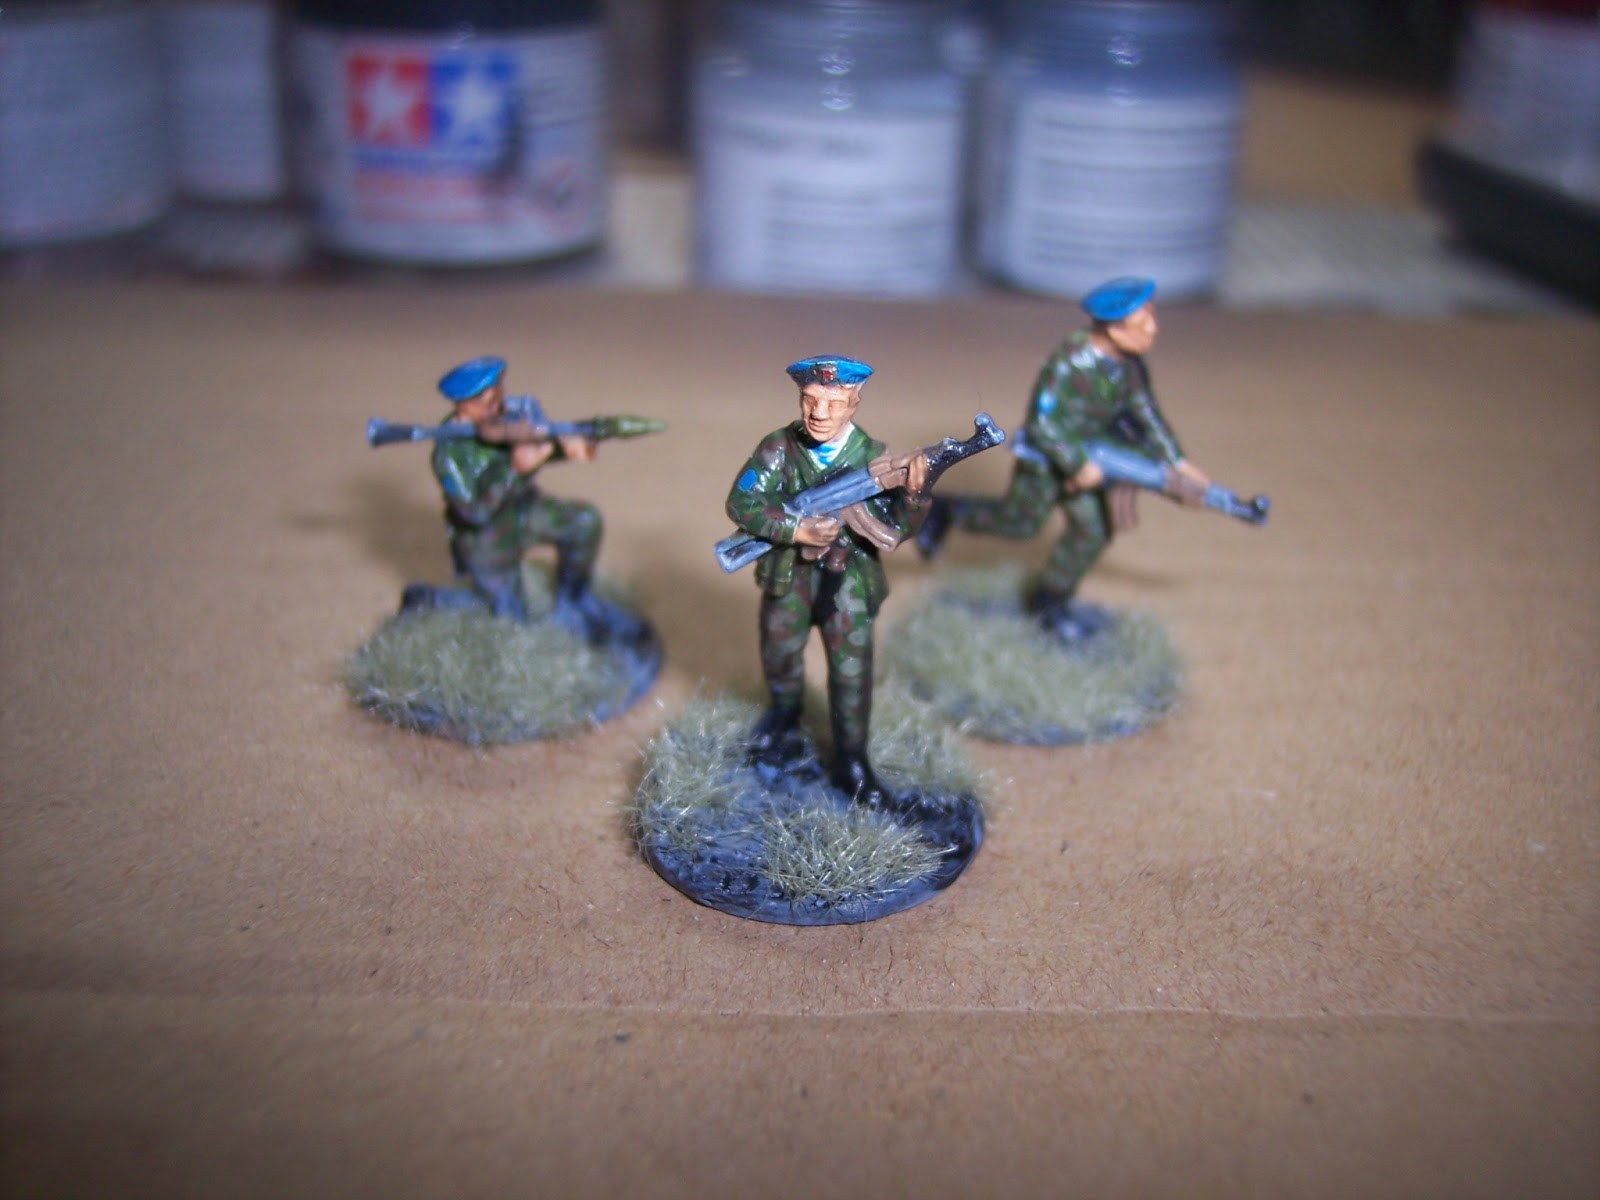 The Modelling Journal: How to paint 1/72 figures